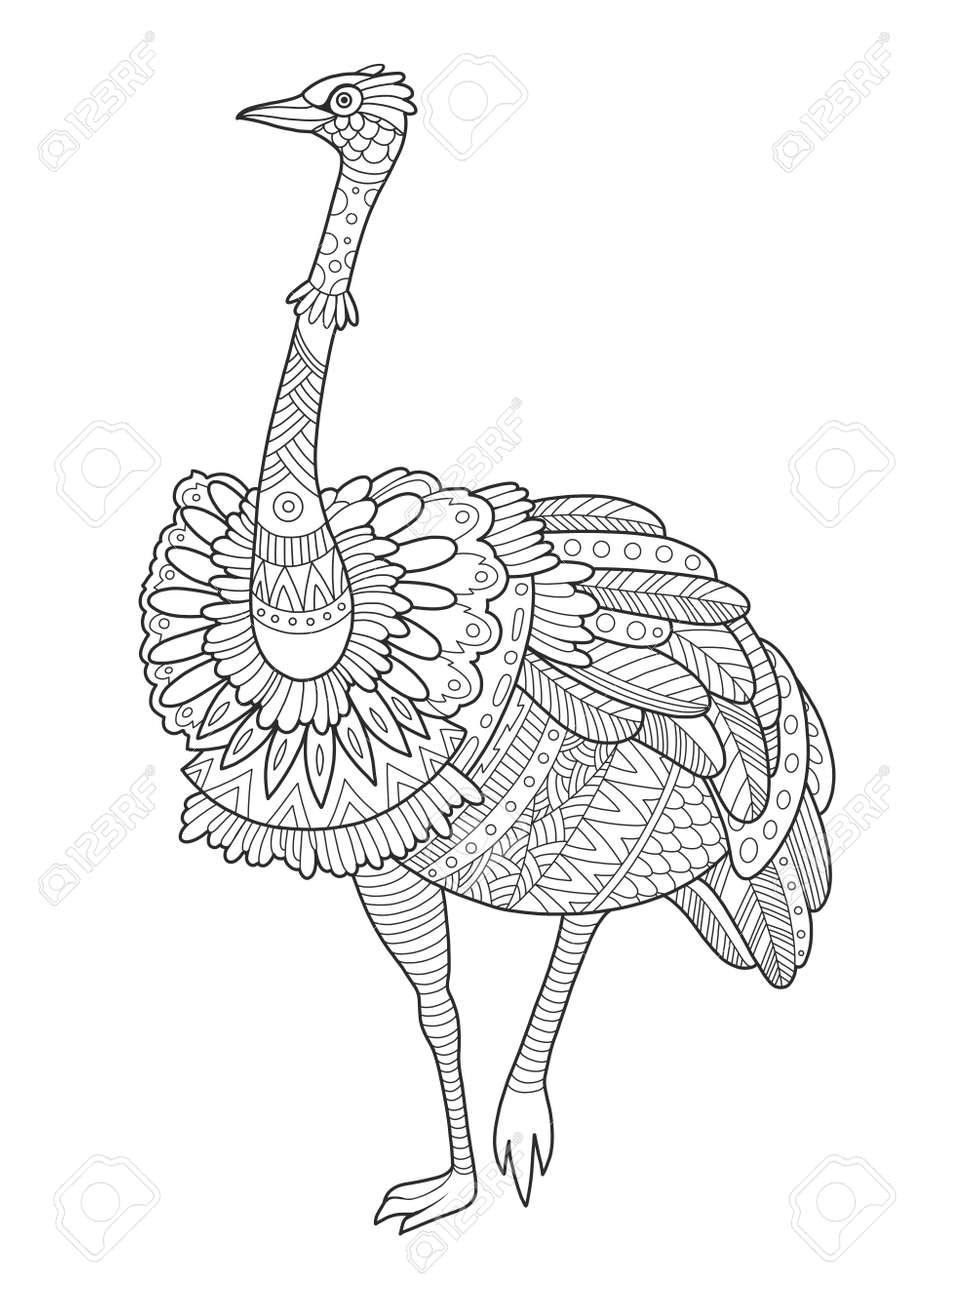 Ostrich Bird Coloring Book Vector Illustration Black And White - Bird-coloring-book